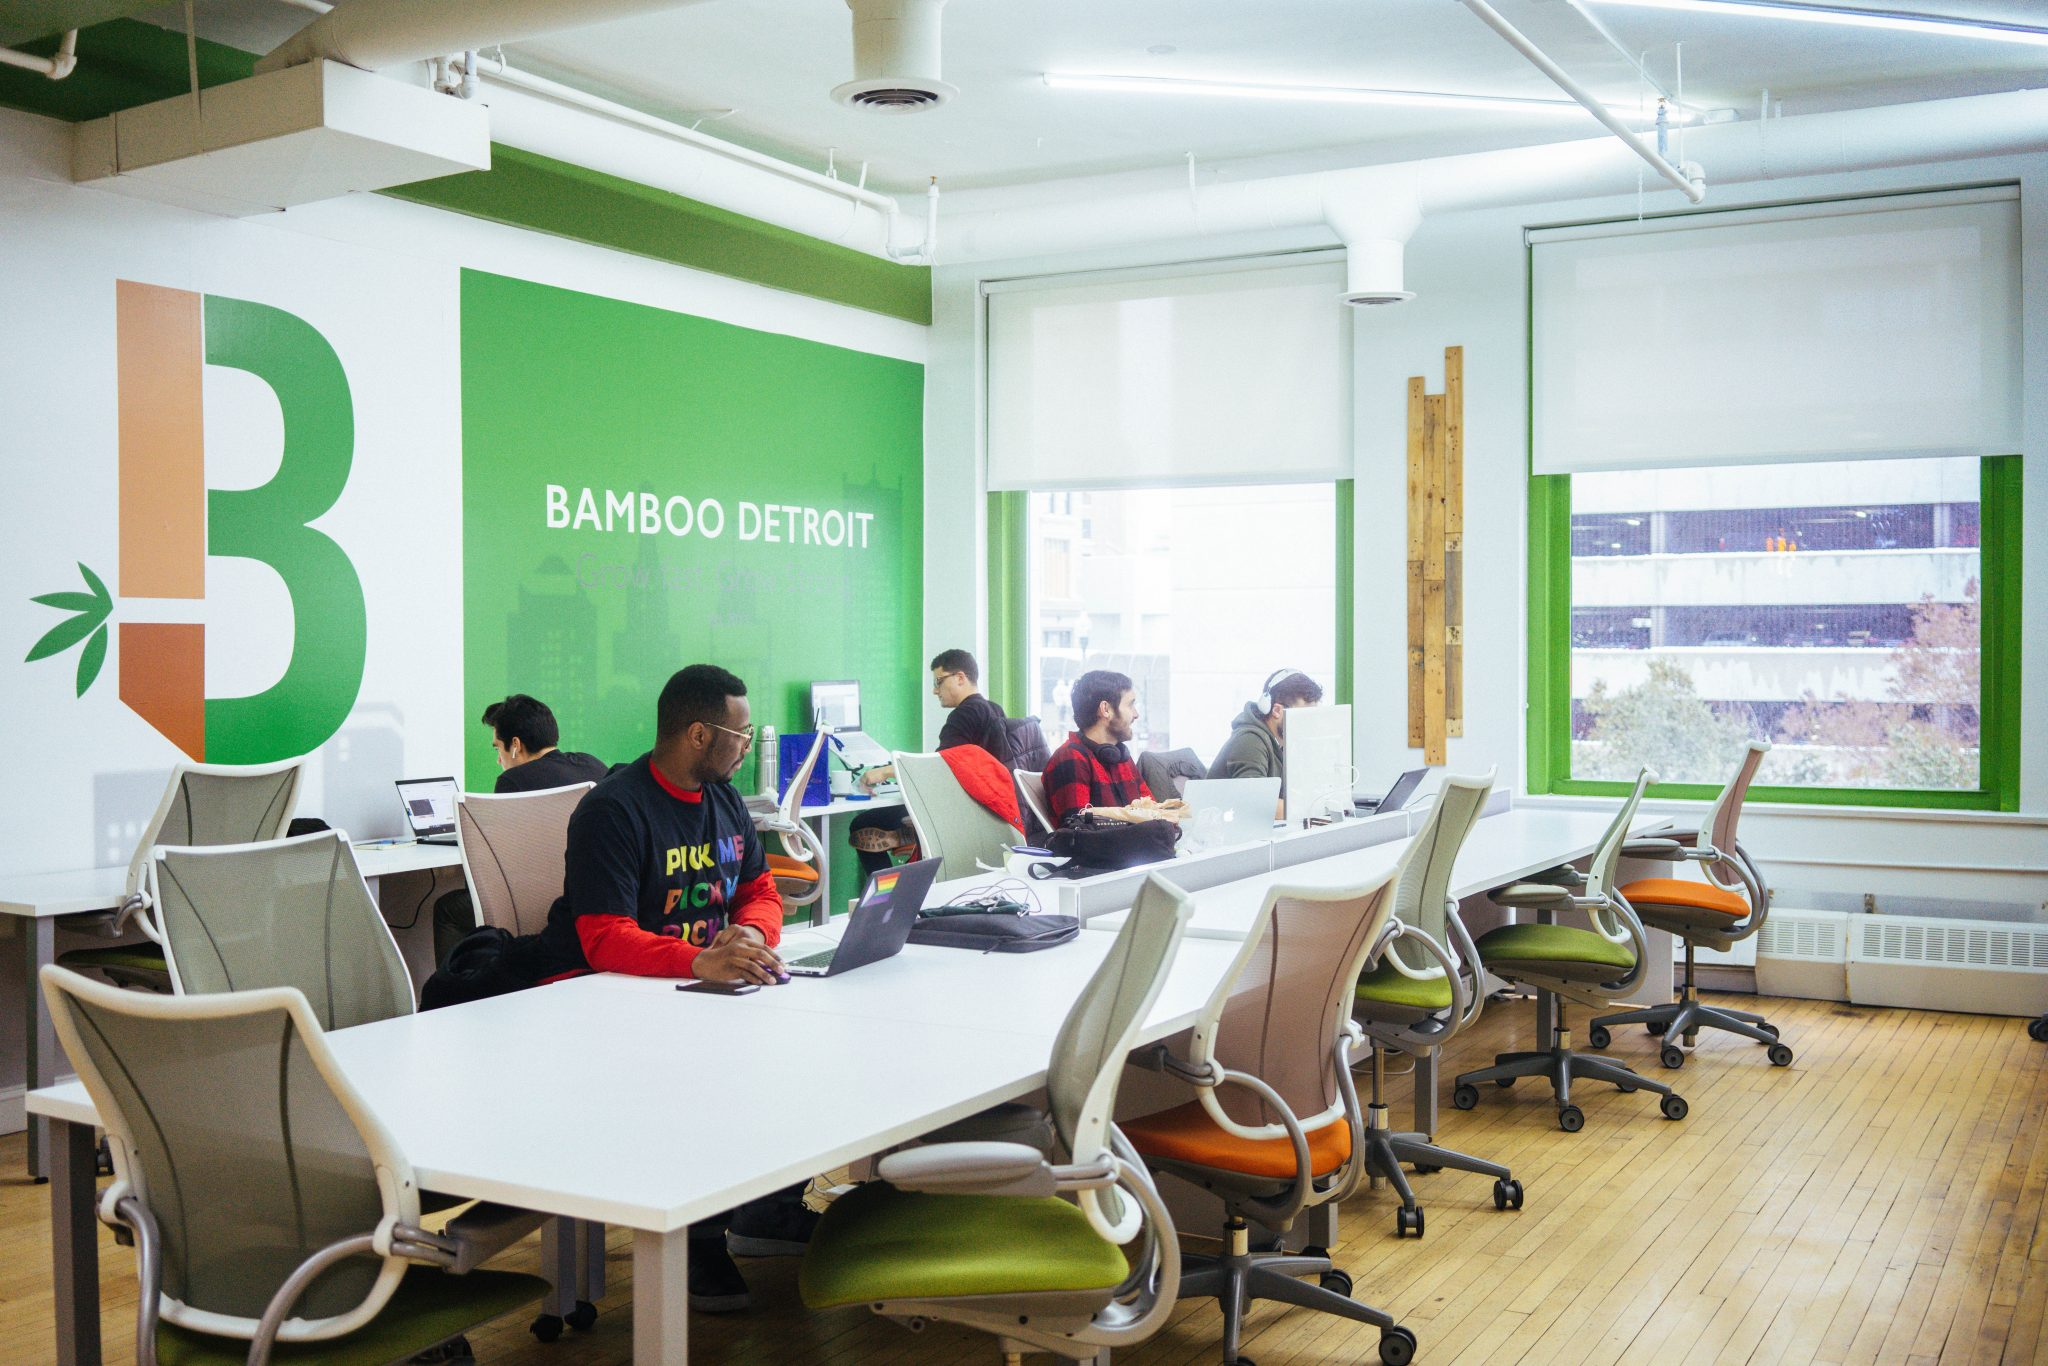 BAMBOO DETROIT WORKSPACE. PHOTO ACRONYM